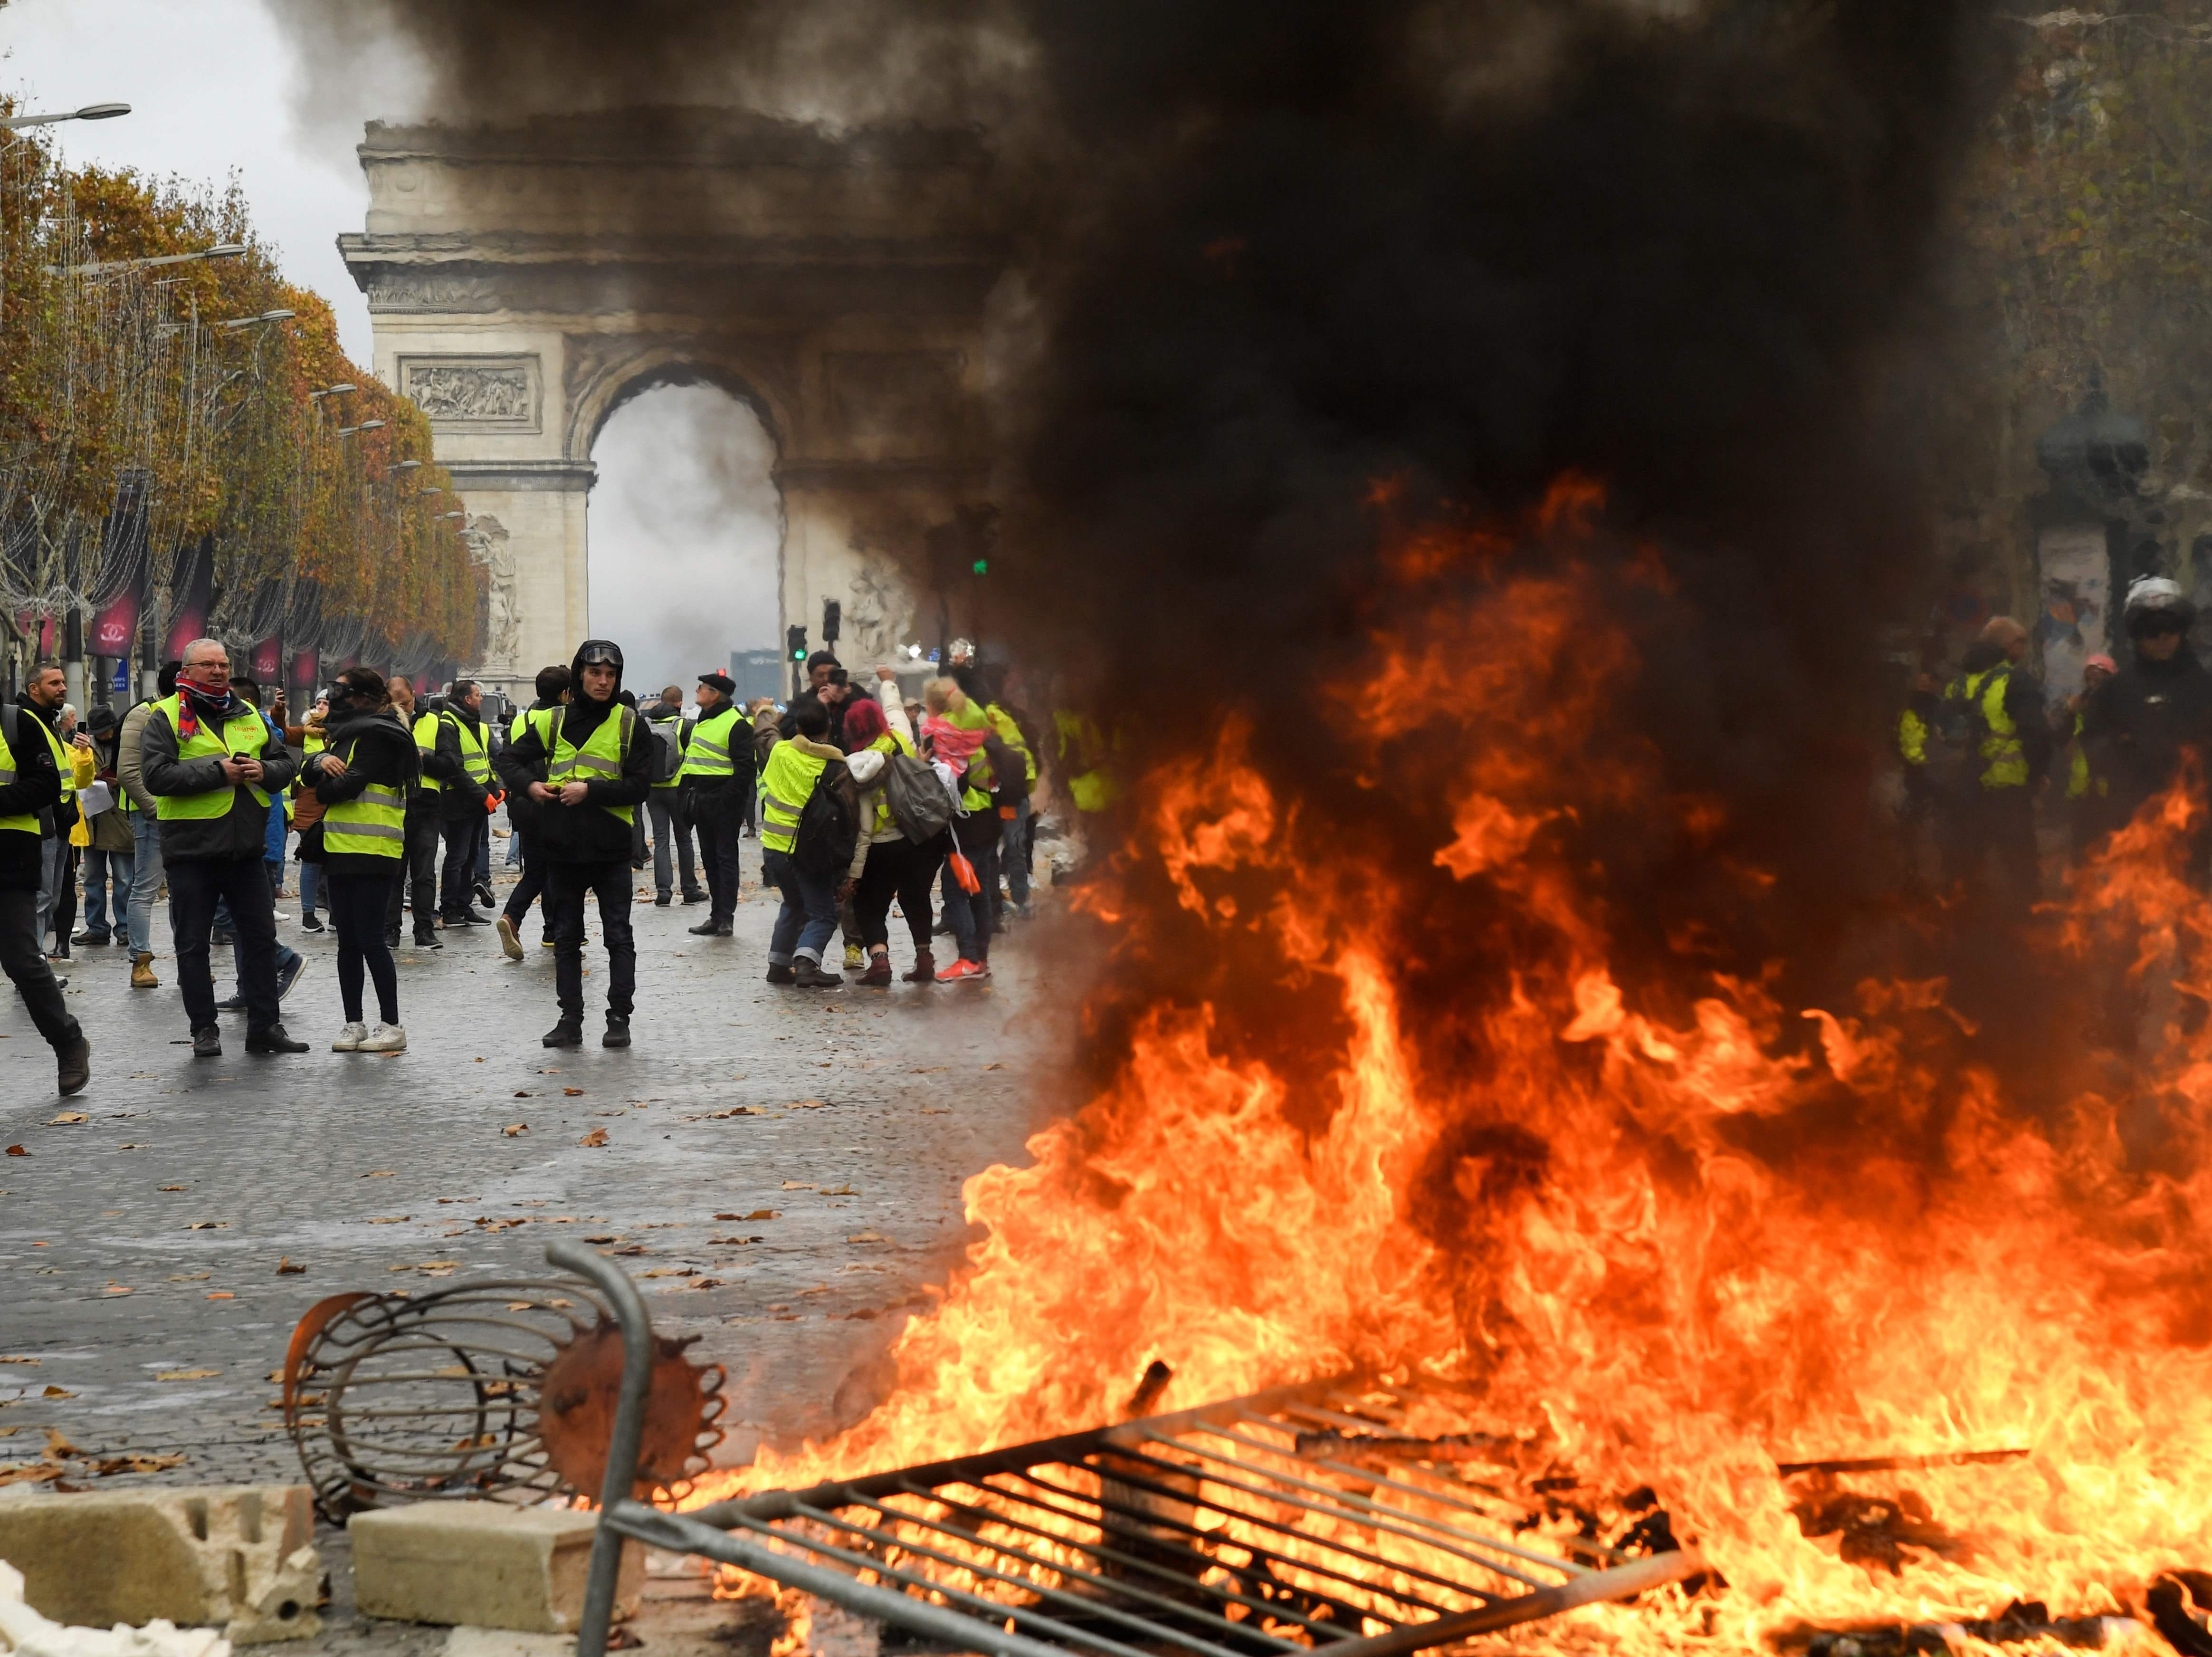 Protestors stand in front of a fire of furnitures during a protest of Yellow vests against rising oil prices and living costs near the Arc of Triomphe on the Champs Elysees in Paris, on Nov. 24, 2018.